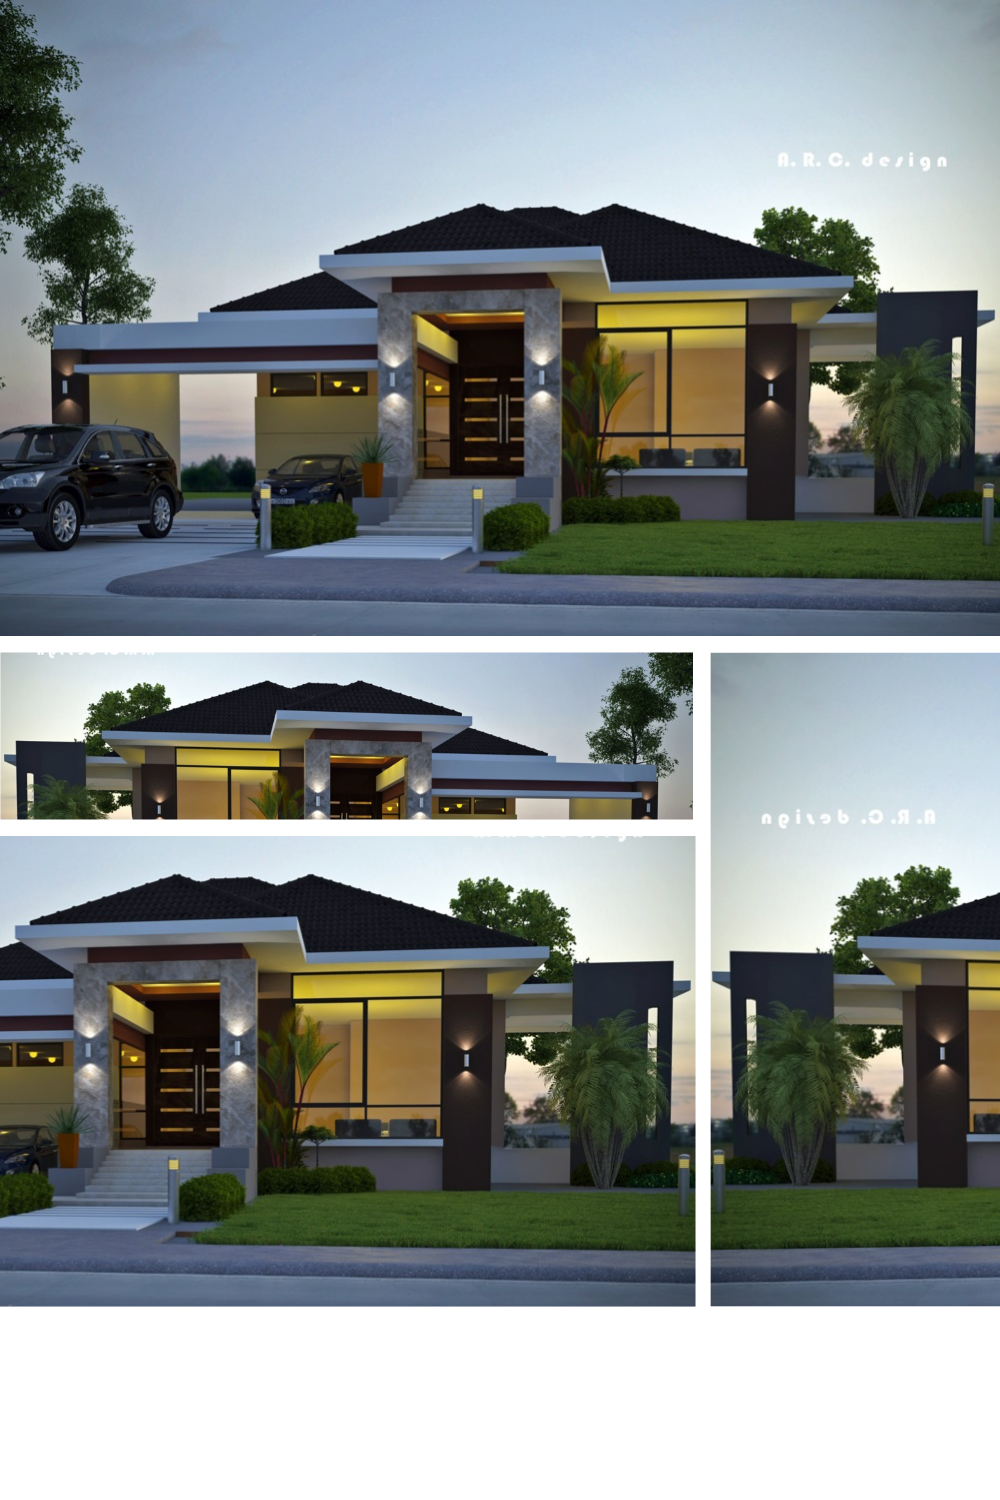 Custom Home Design Affordable House Design House Architecture Design Beautiful House Plans